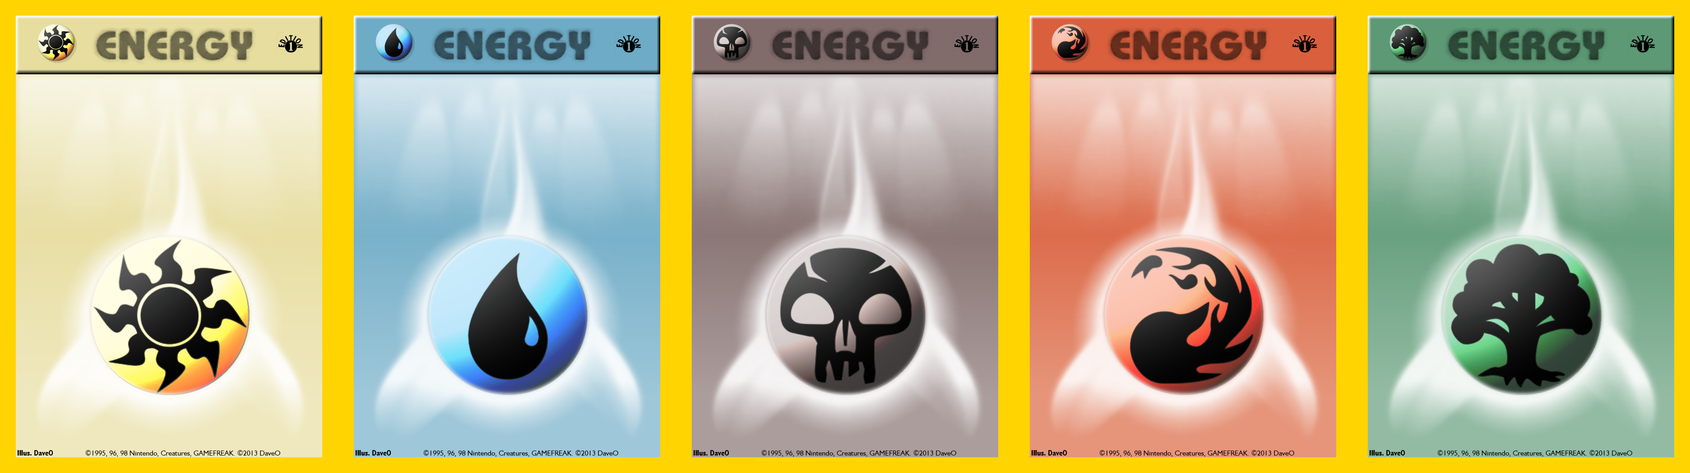 Pokemon Or Magic The Gathering Mana Energy Cards By Iamthedaveo On